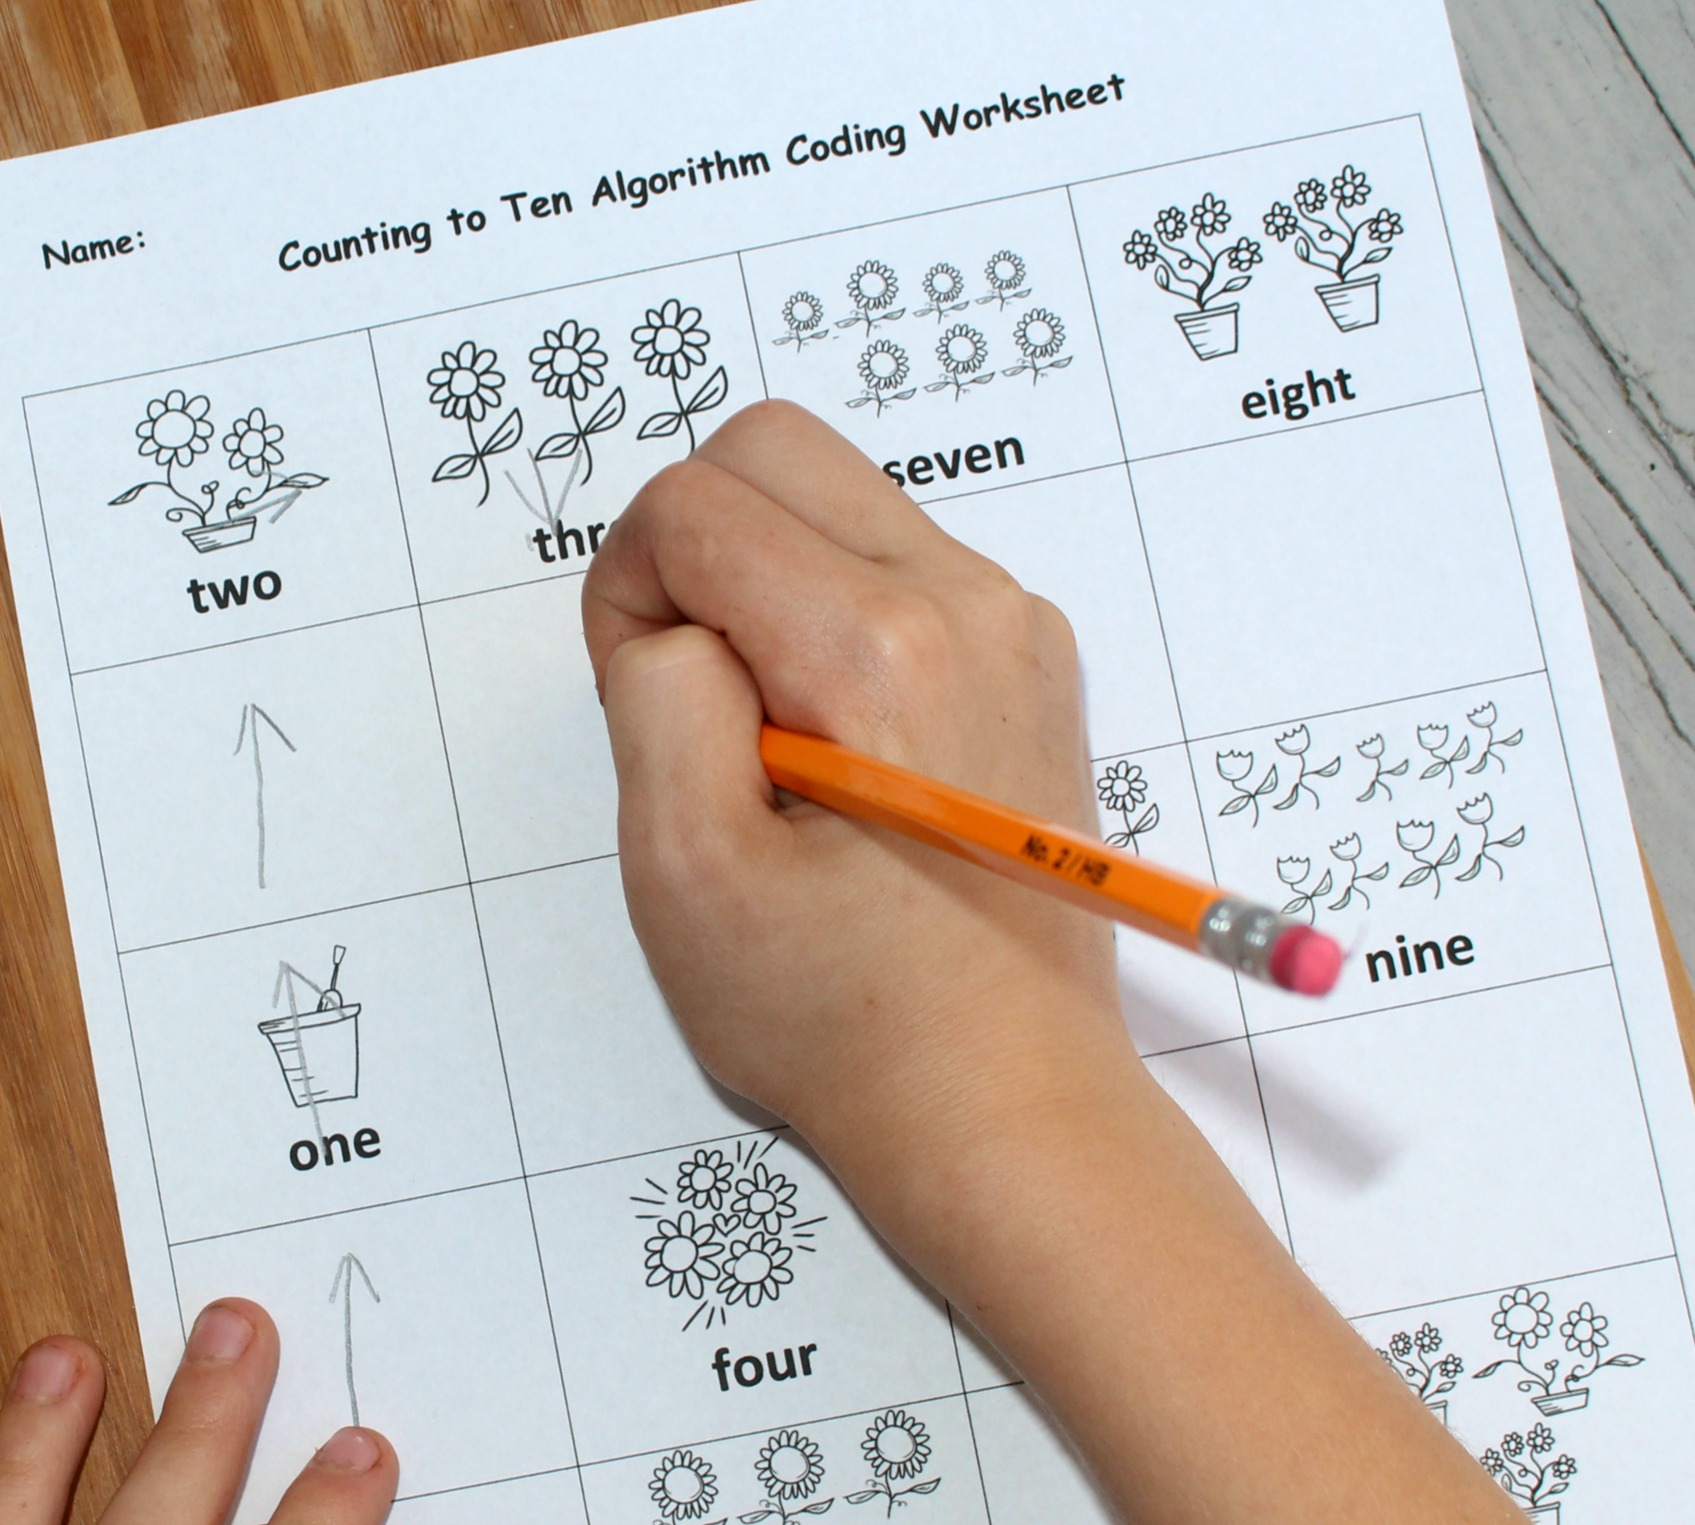 Counting to Ten Algorithm Coding Worksheet - Counting to Three